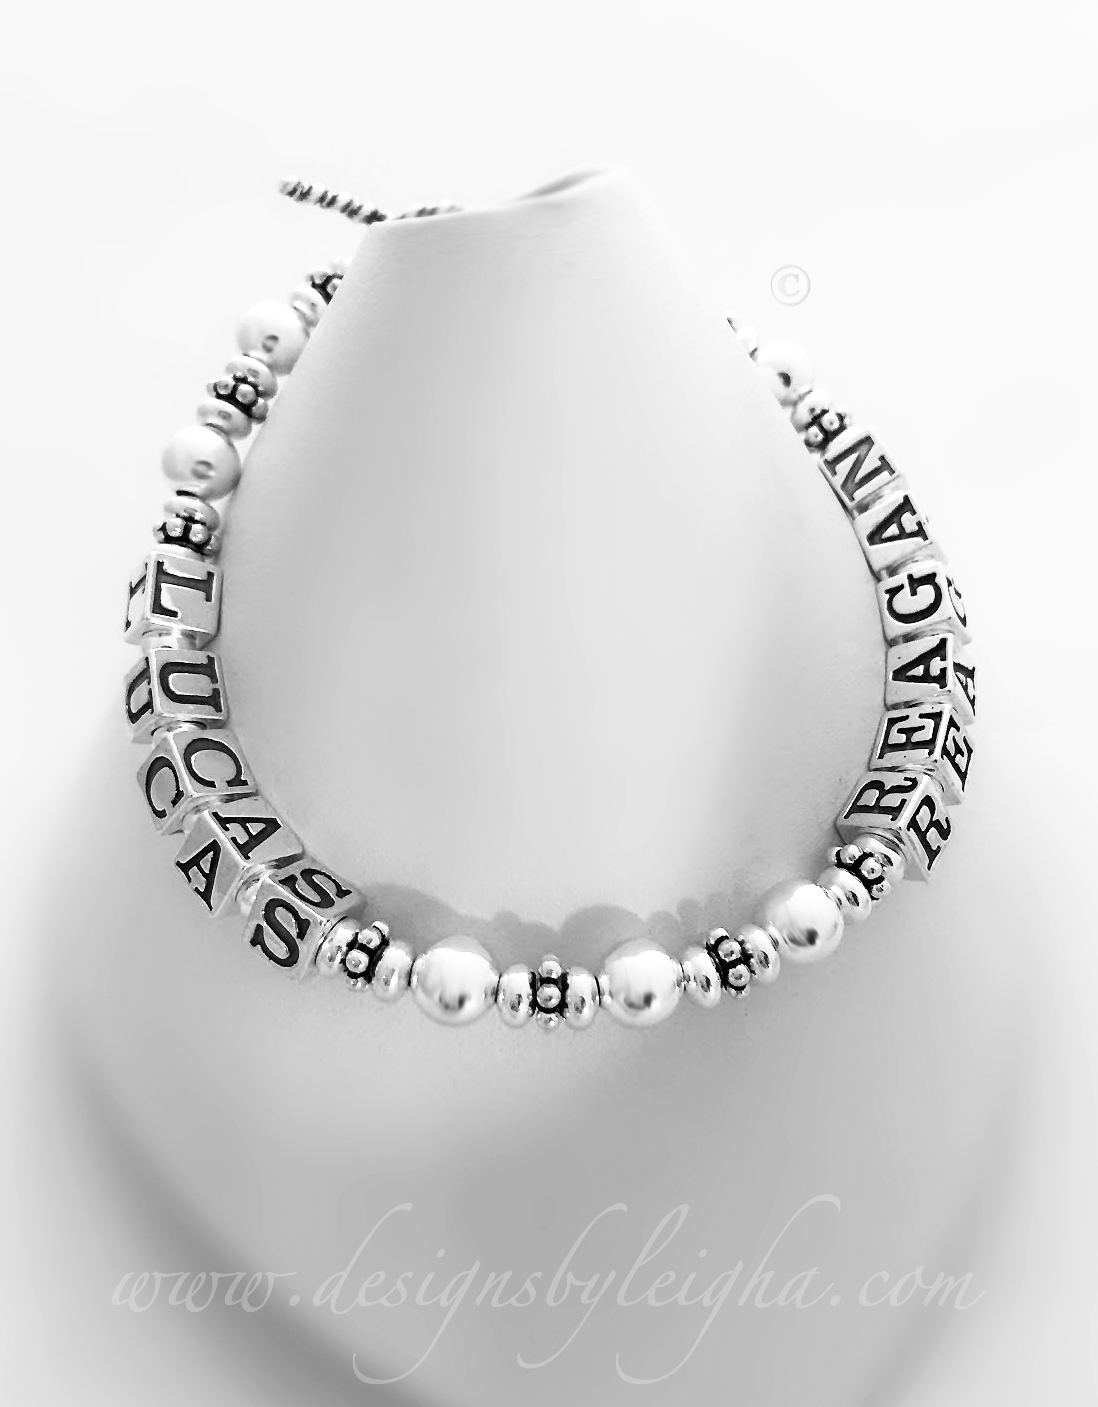 This is a 1 string with 2 names all sterling silver mother bracelet with Lucas and Reagan and no crystals.